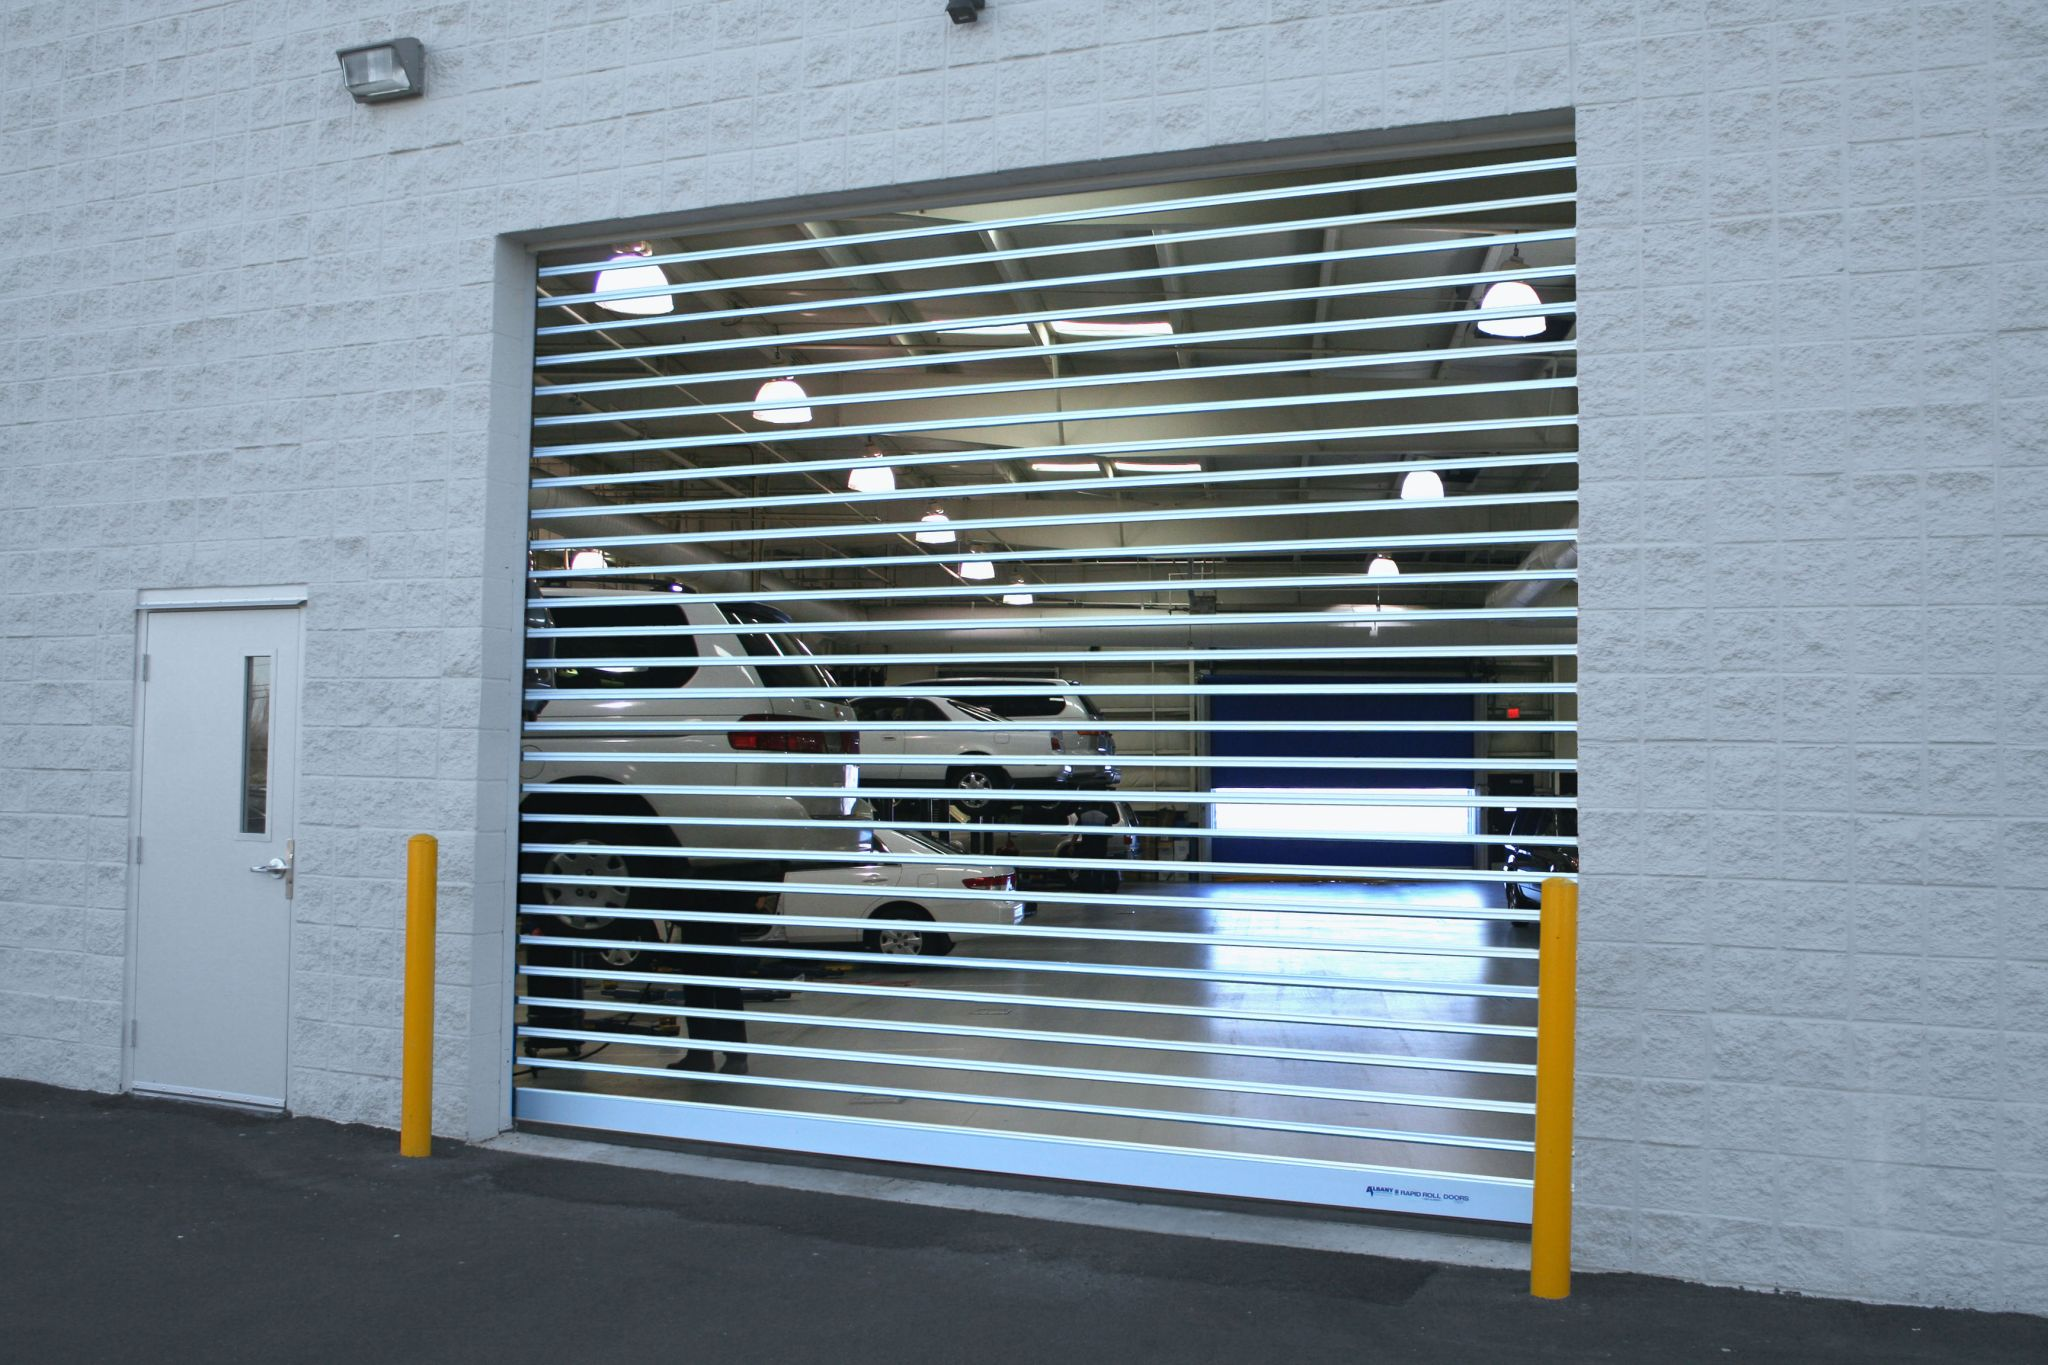 The automotive industry is a major user of these door types as they have found with fewer moving parts and high speed, coupled with the safety systems, little maintenance is required.